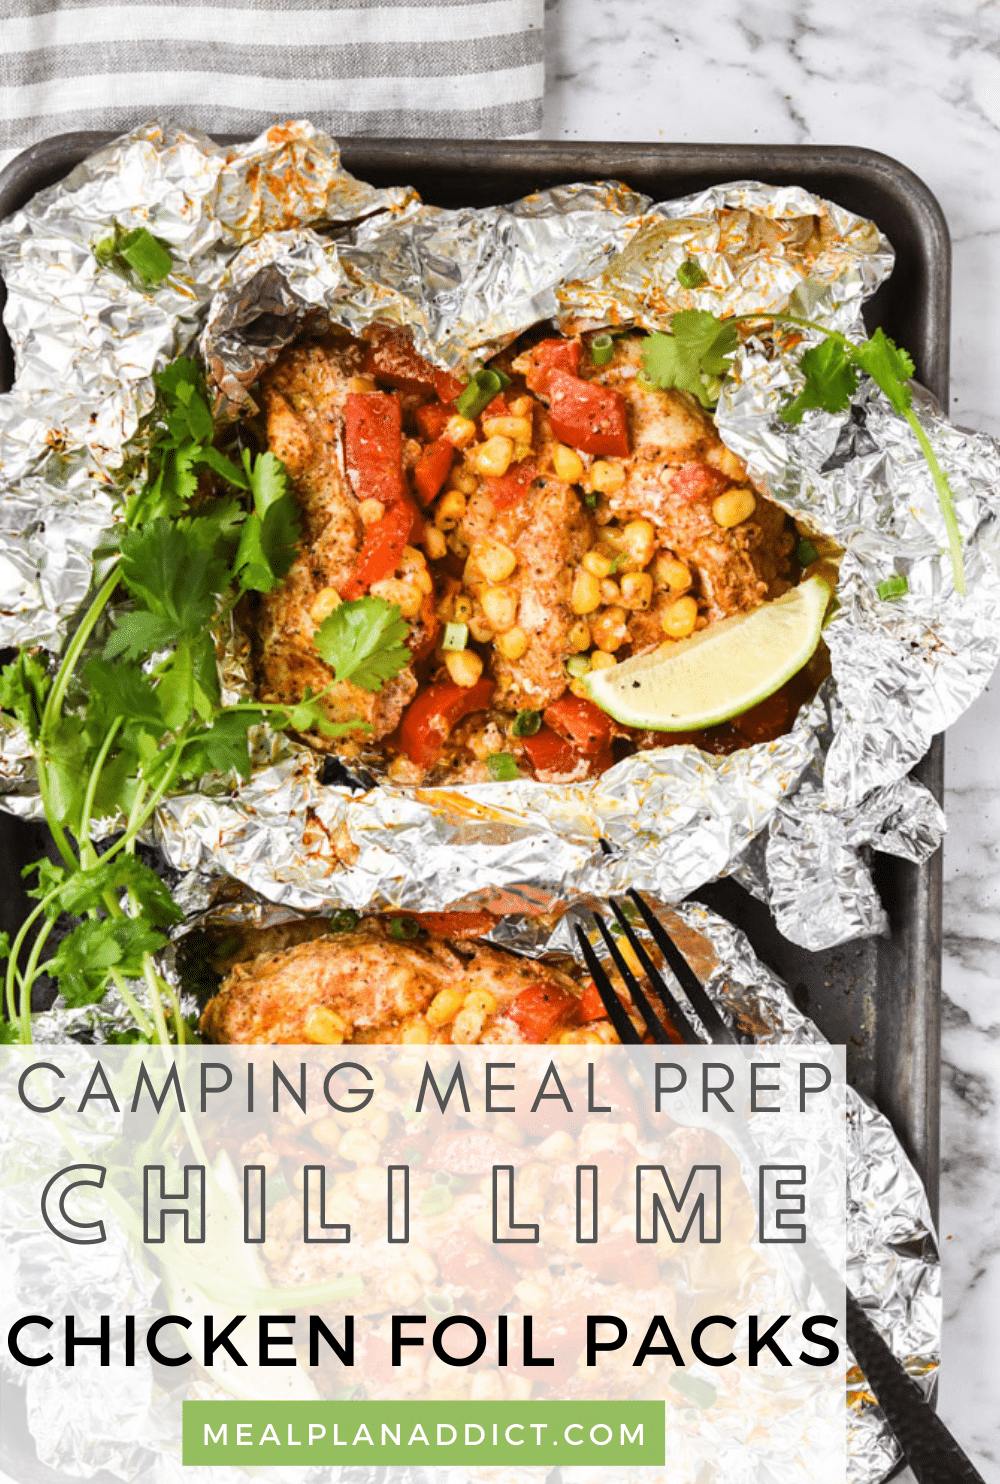 Camping Meal Prep Chili Lime Chicken Foil Packs | Meal Plan Addict